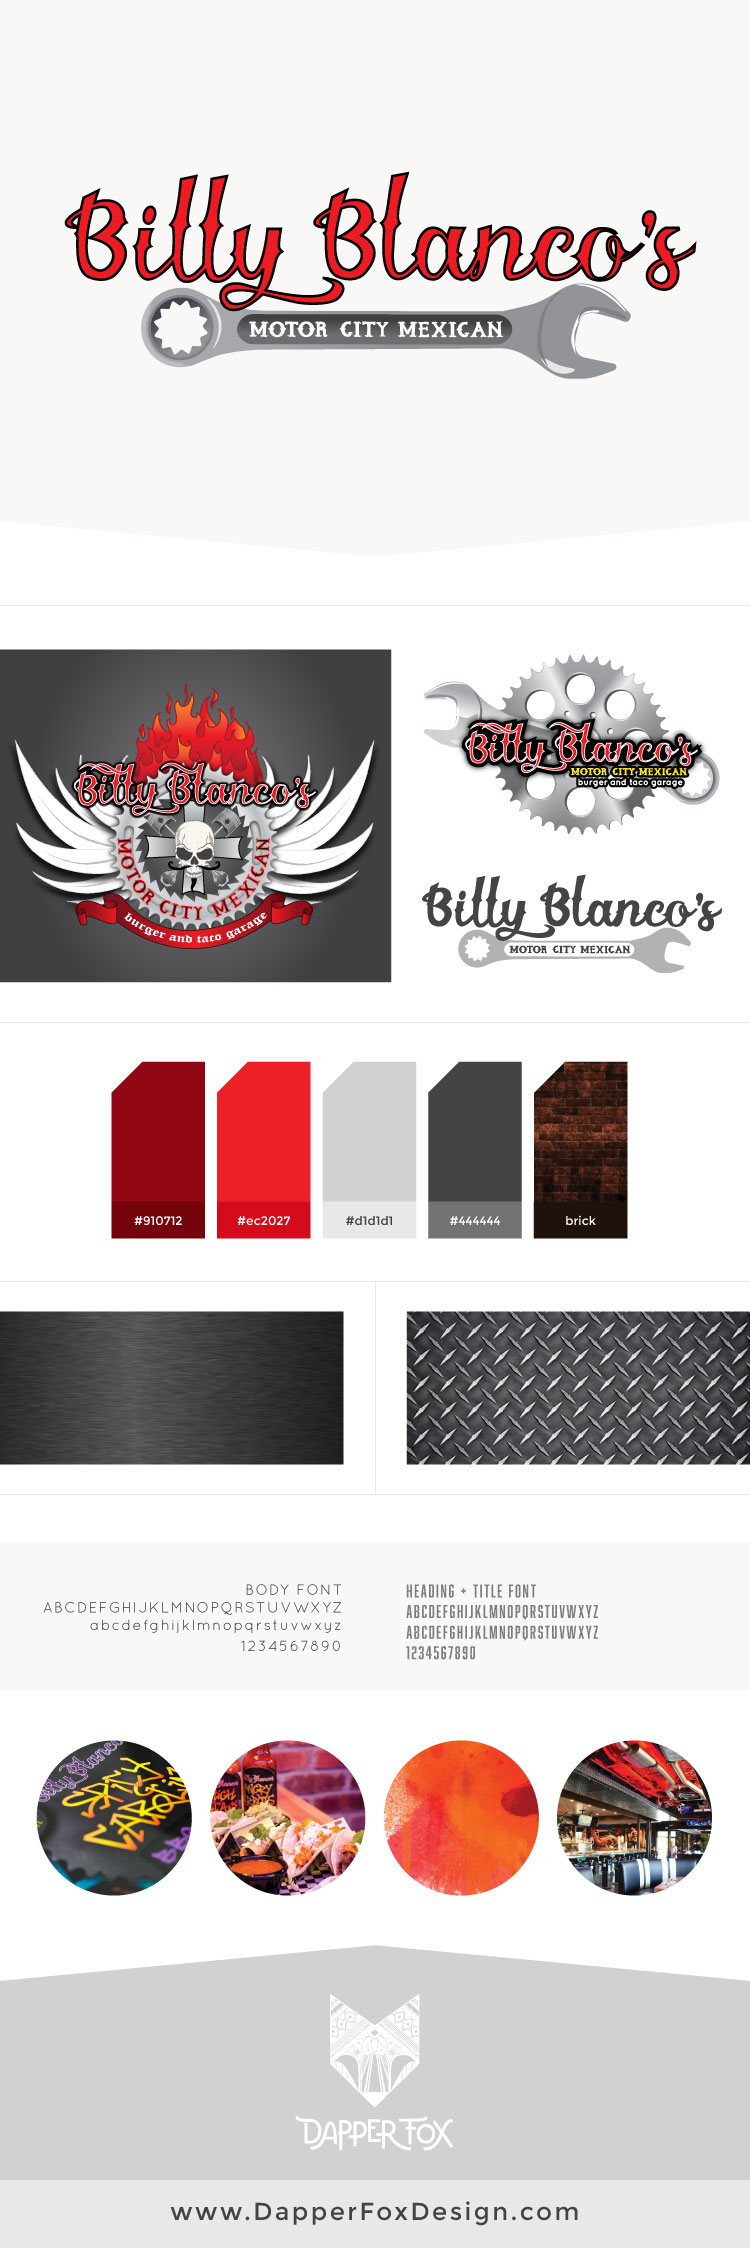 Billy Blanco's Restaurant in Park City - Branding and Logo Design by Dapper Fox - Masculine, Modern and Unique Logo Design